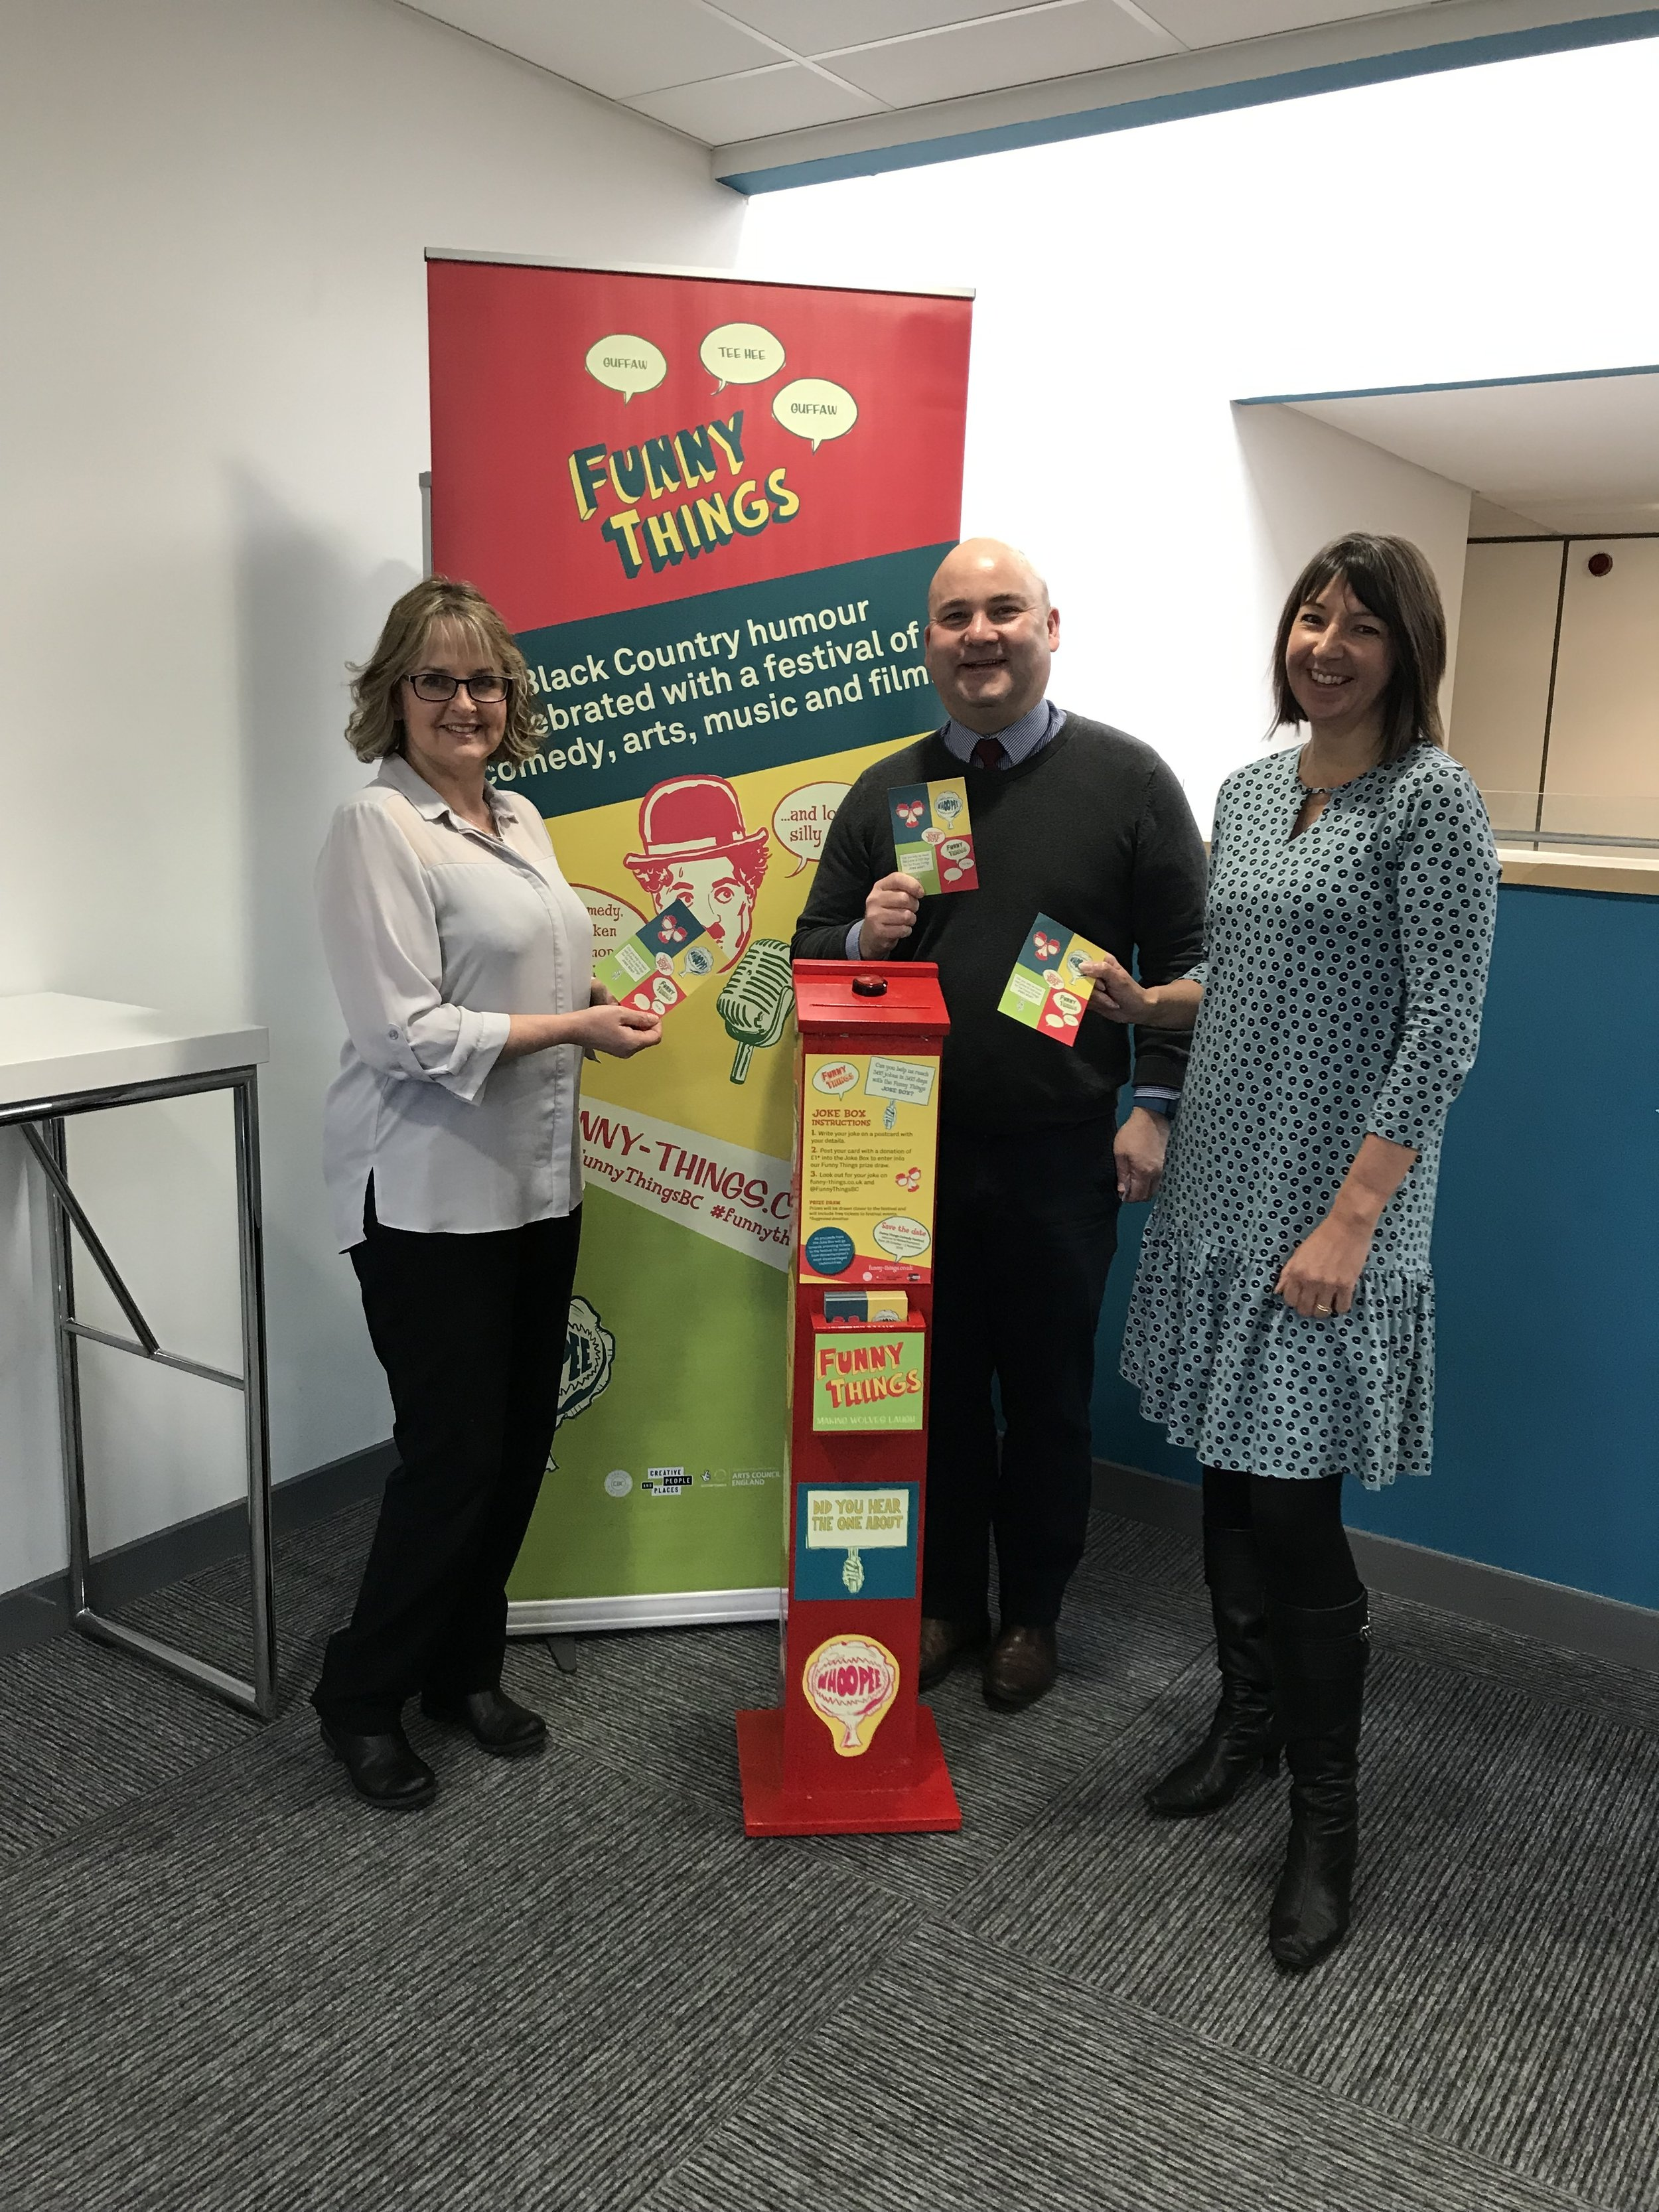 The Joke Box makes its first visit to the Black Country Chamber of Commerce